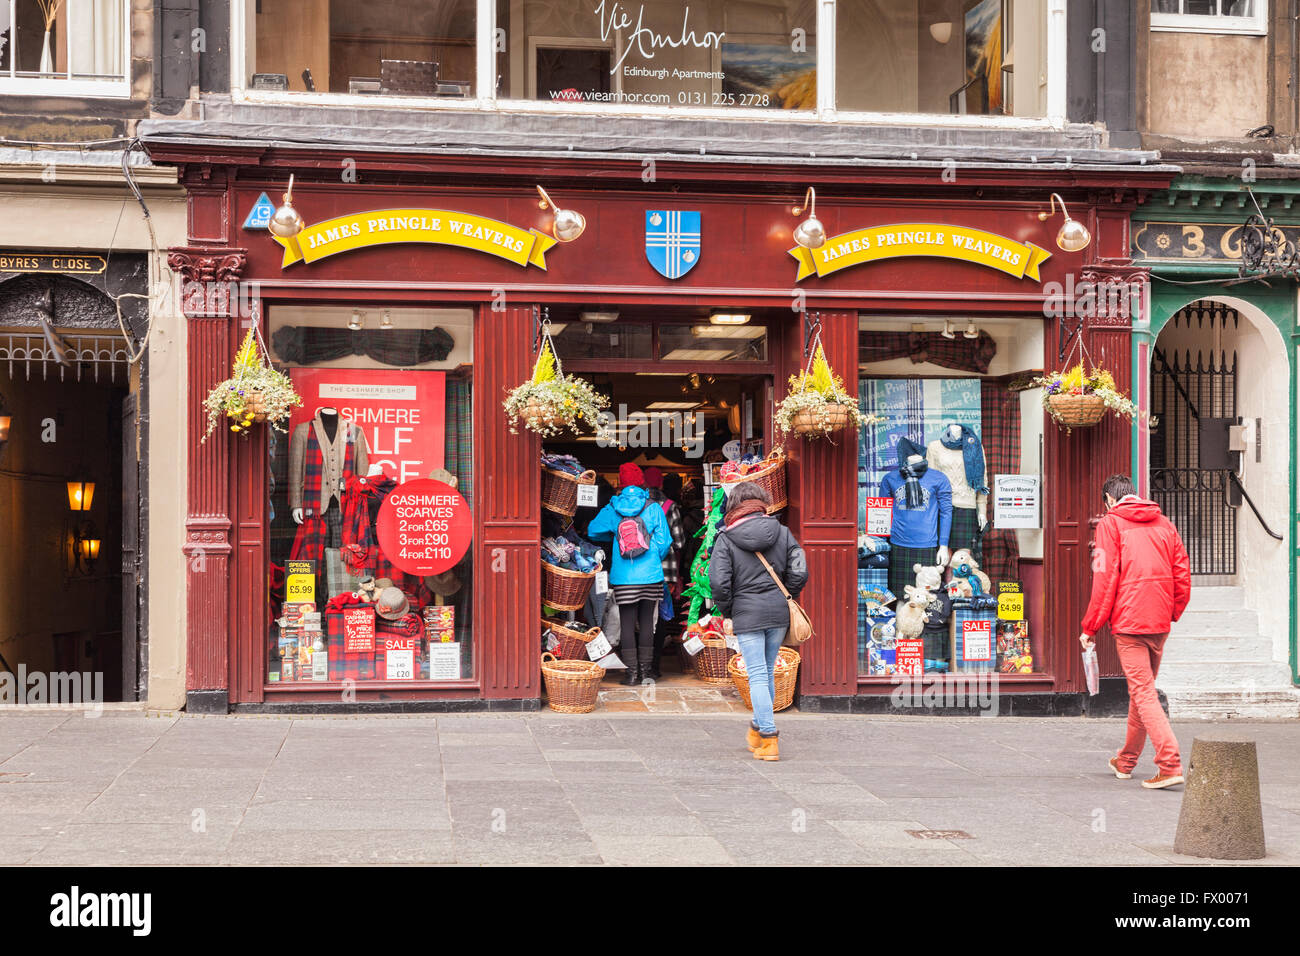 James Pringle Weavers, cashmere and tartan shop in the Royal Mile, Edinburgh, Scotland, UK - Stock Image